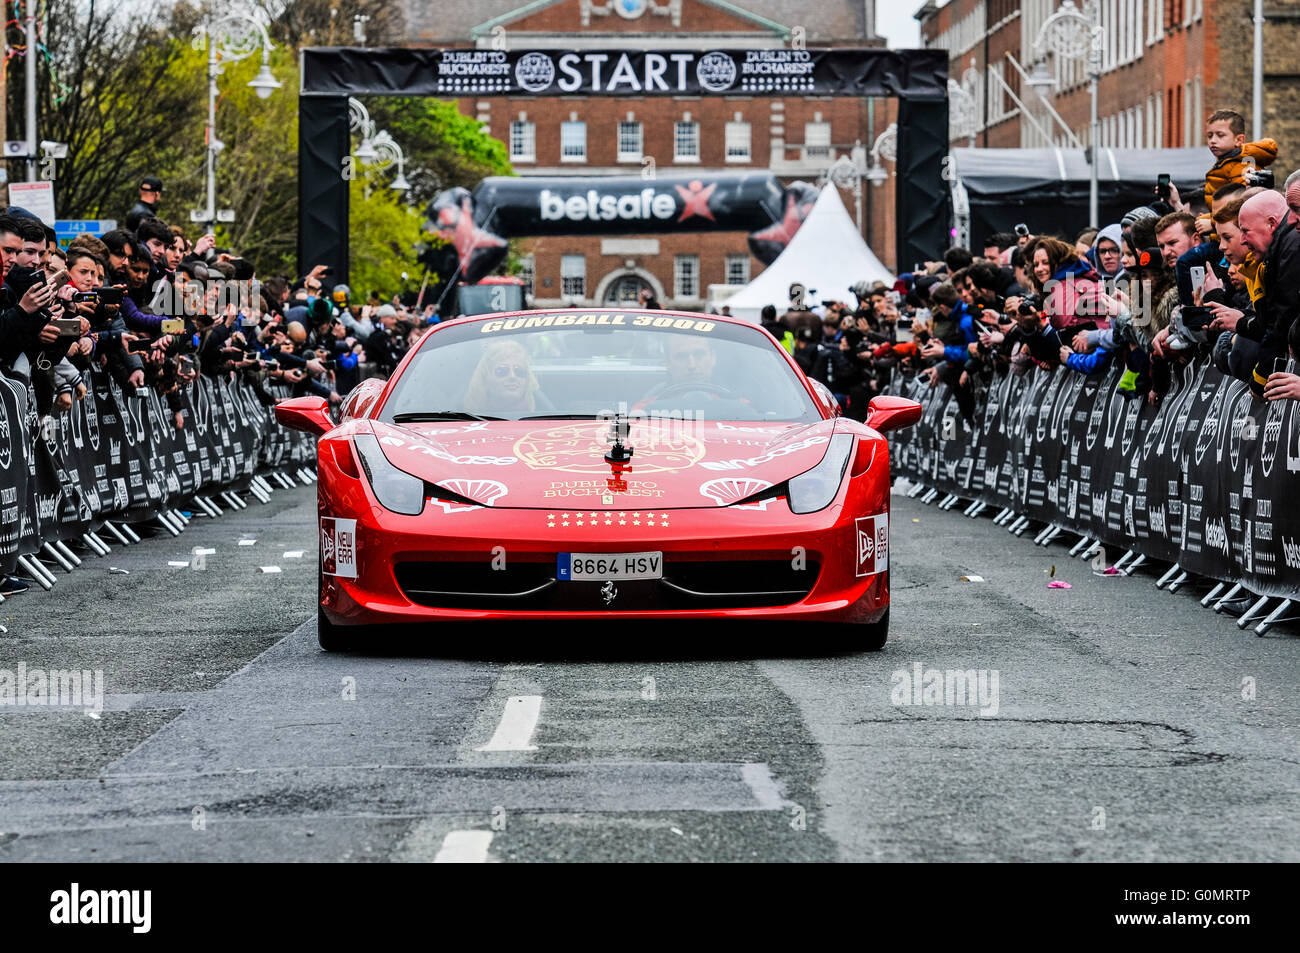 DUBLIN, IRELAND. MAY 01 2016 - A Ferarri 458 starts the 6 day drive to Bucharest from Dublin as it competes in the - Stock Image